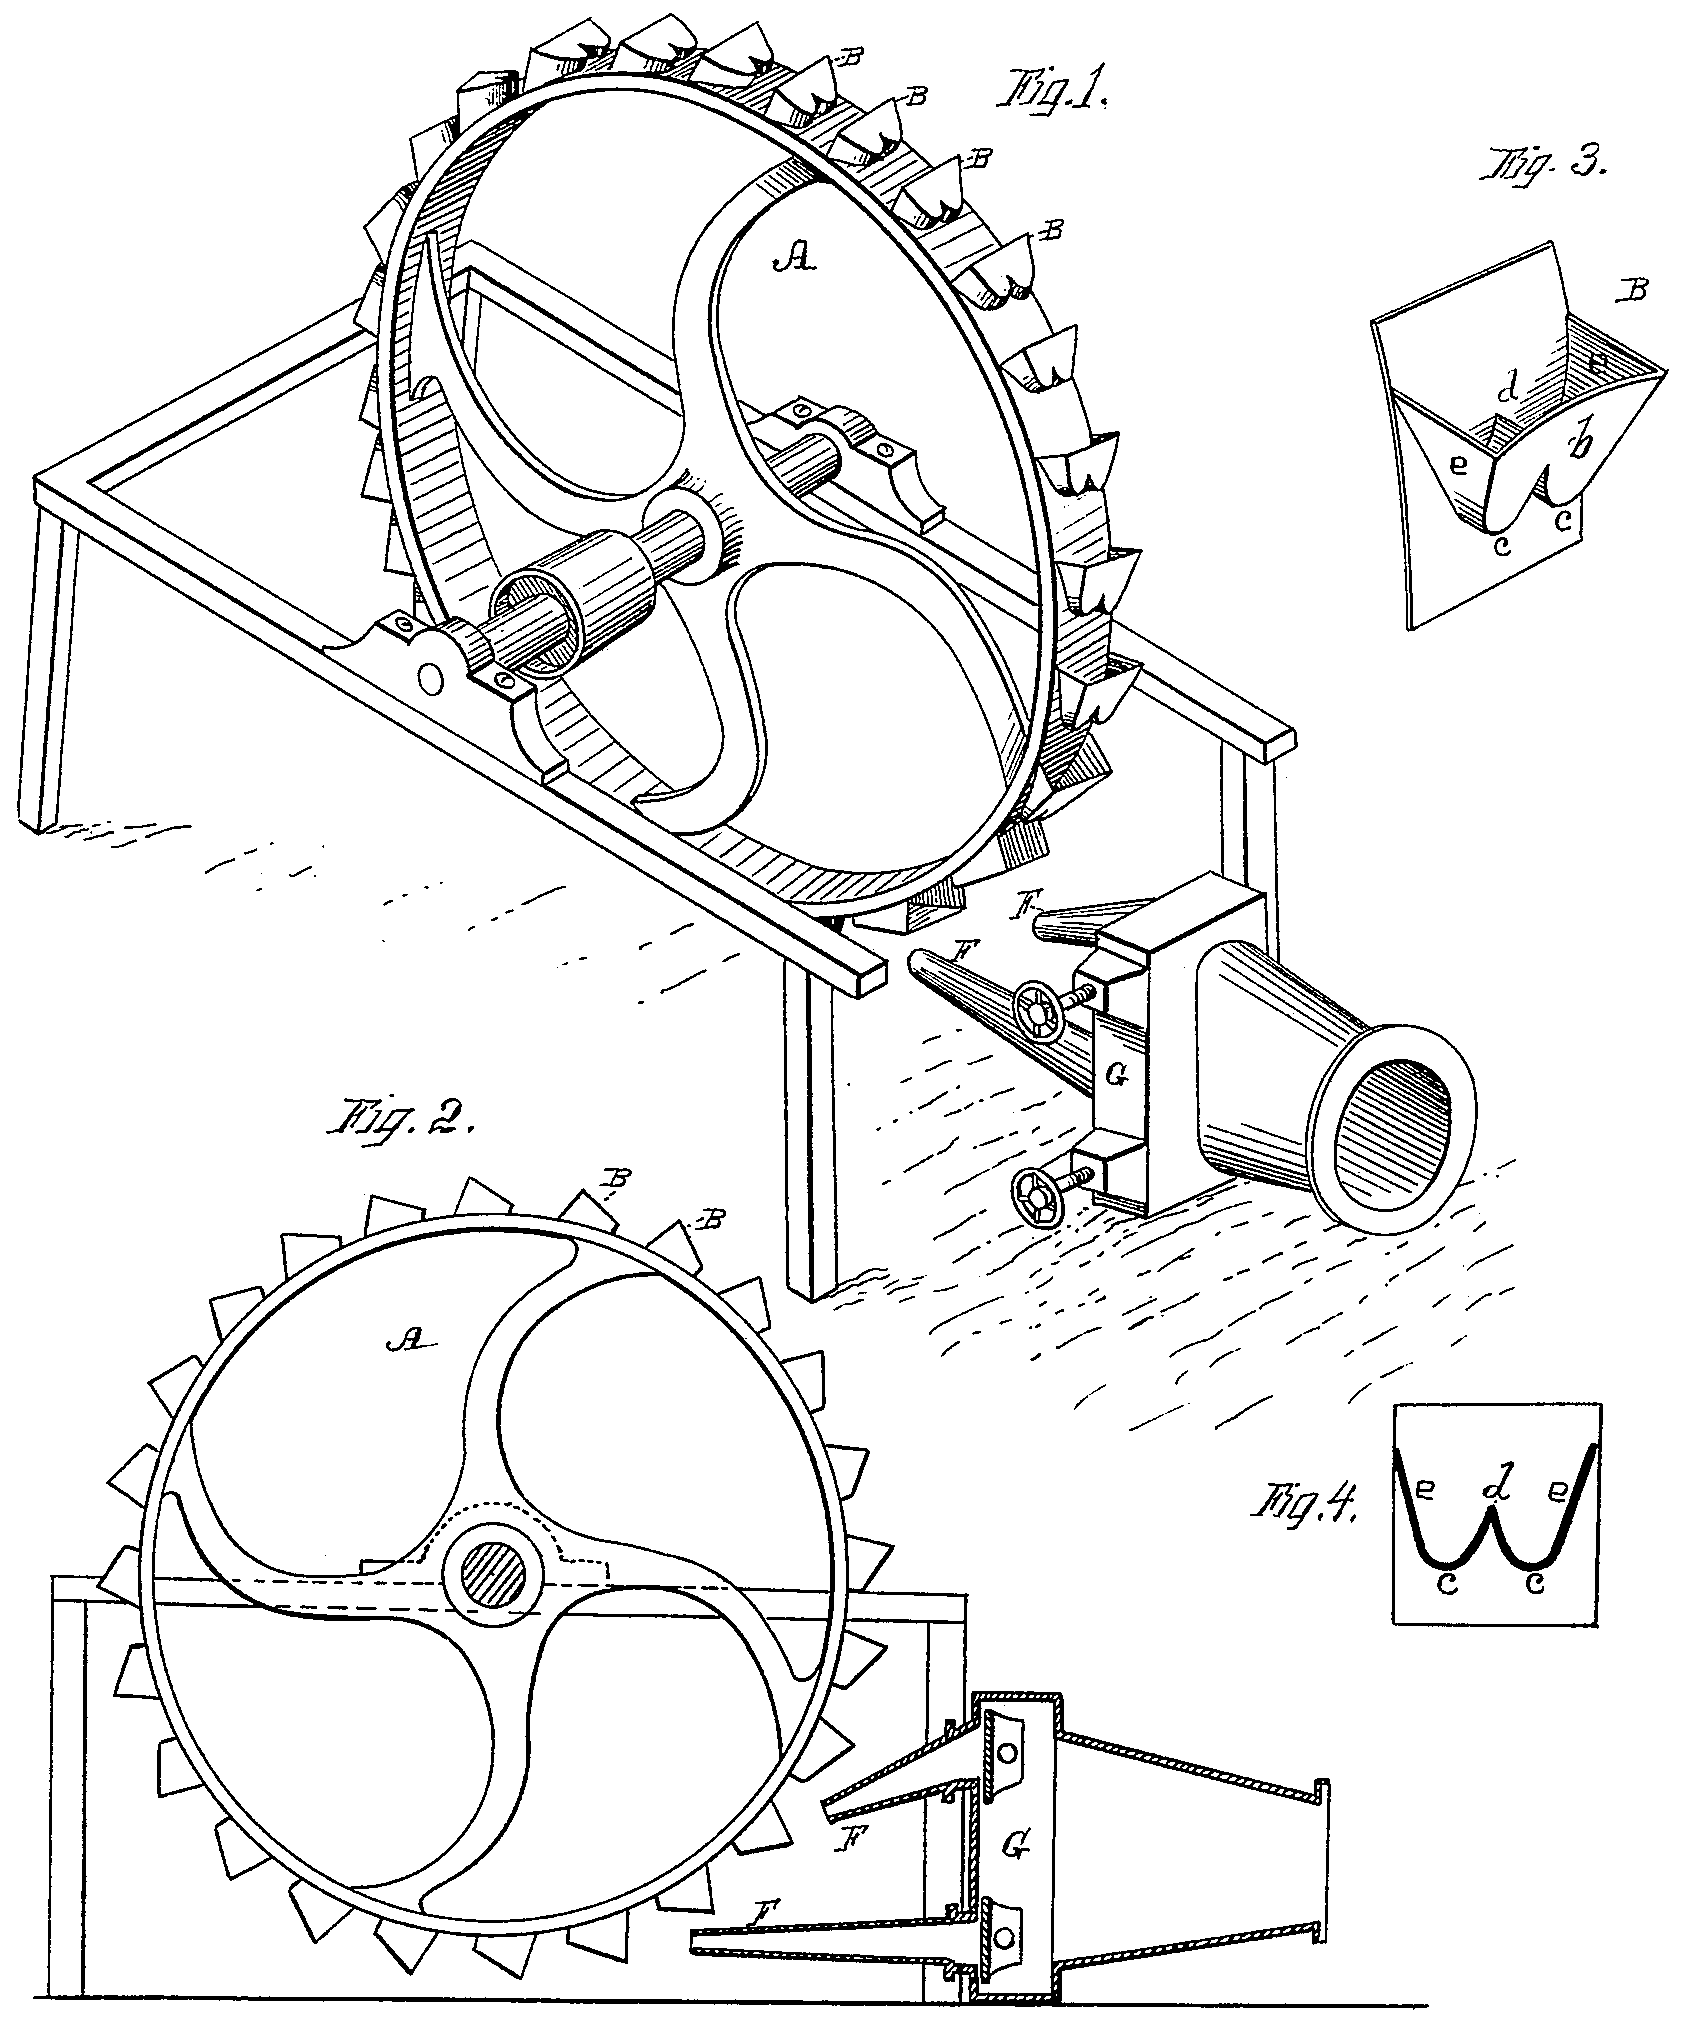 An illustration from Pelton's original patent filed in 1880.